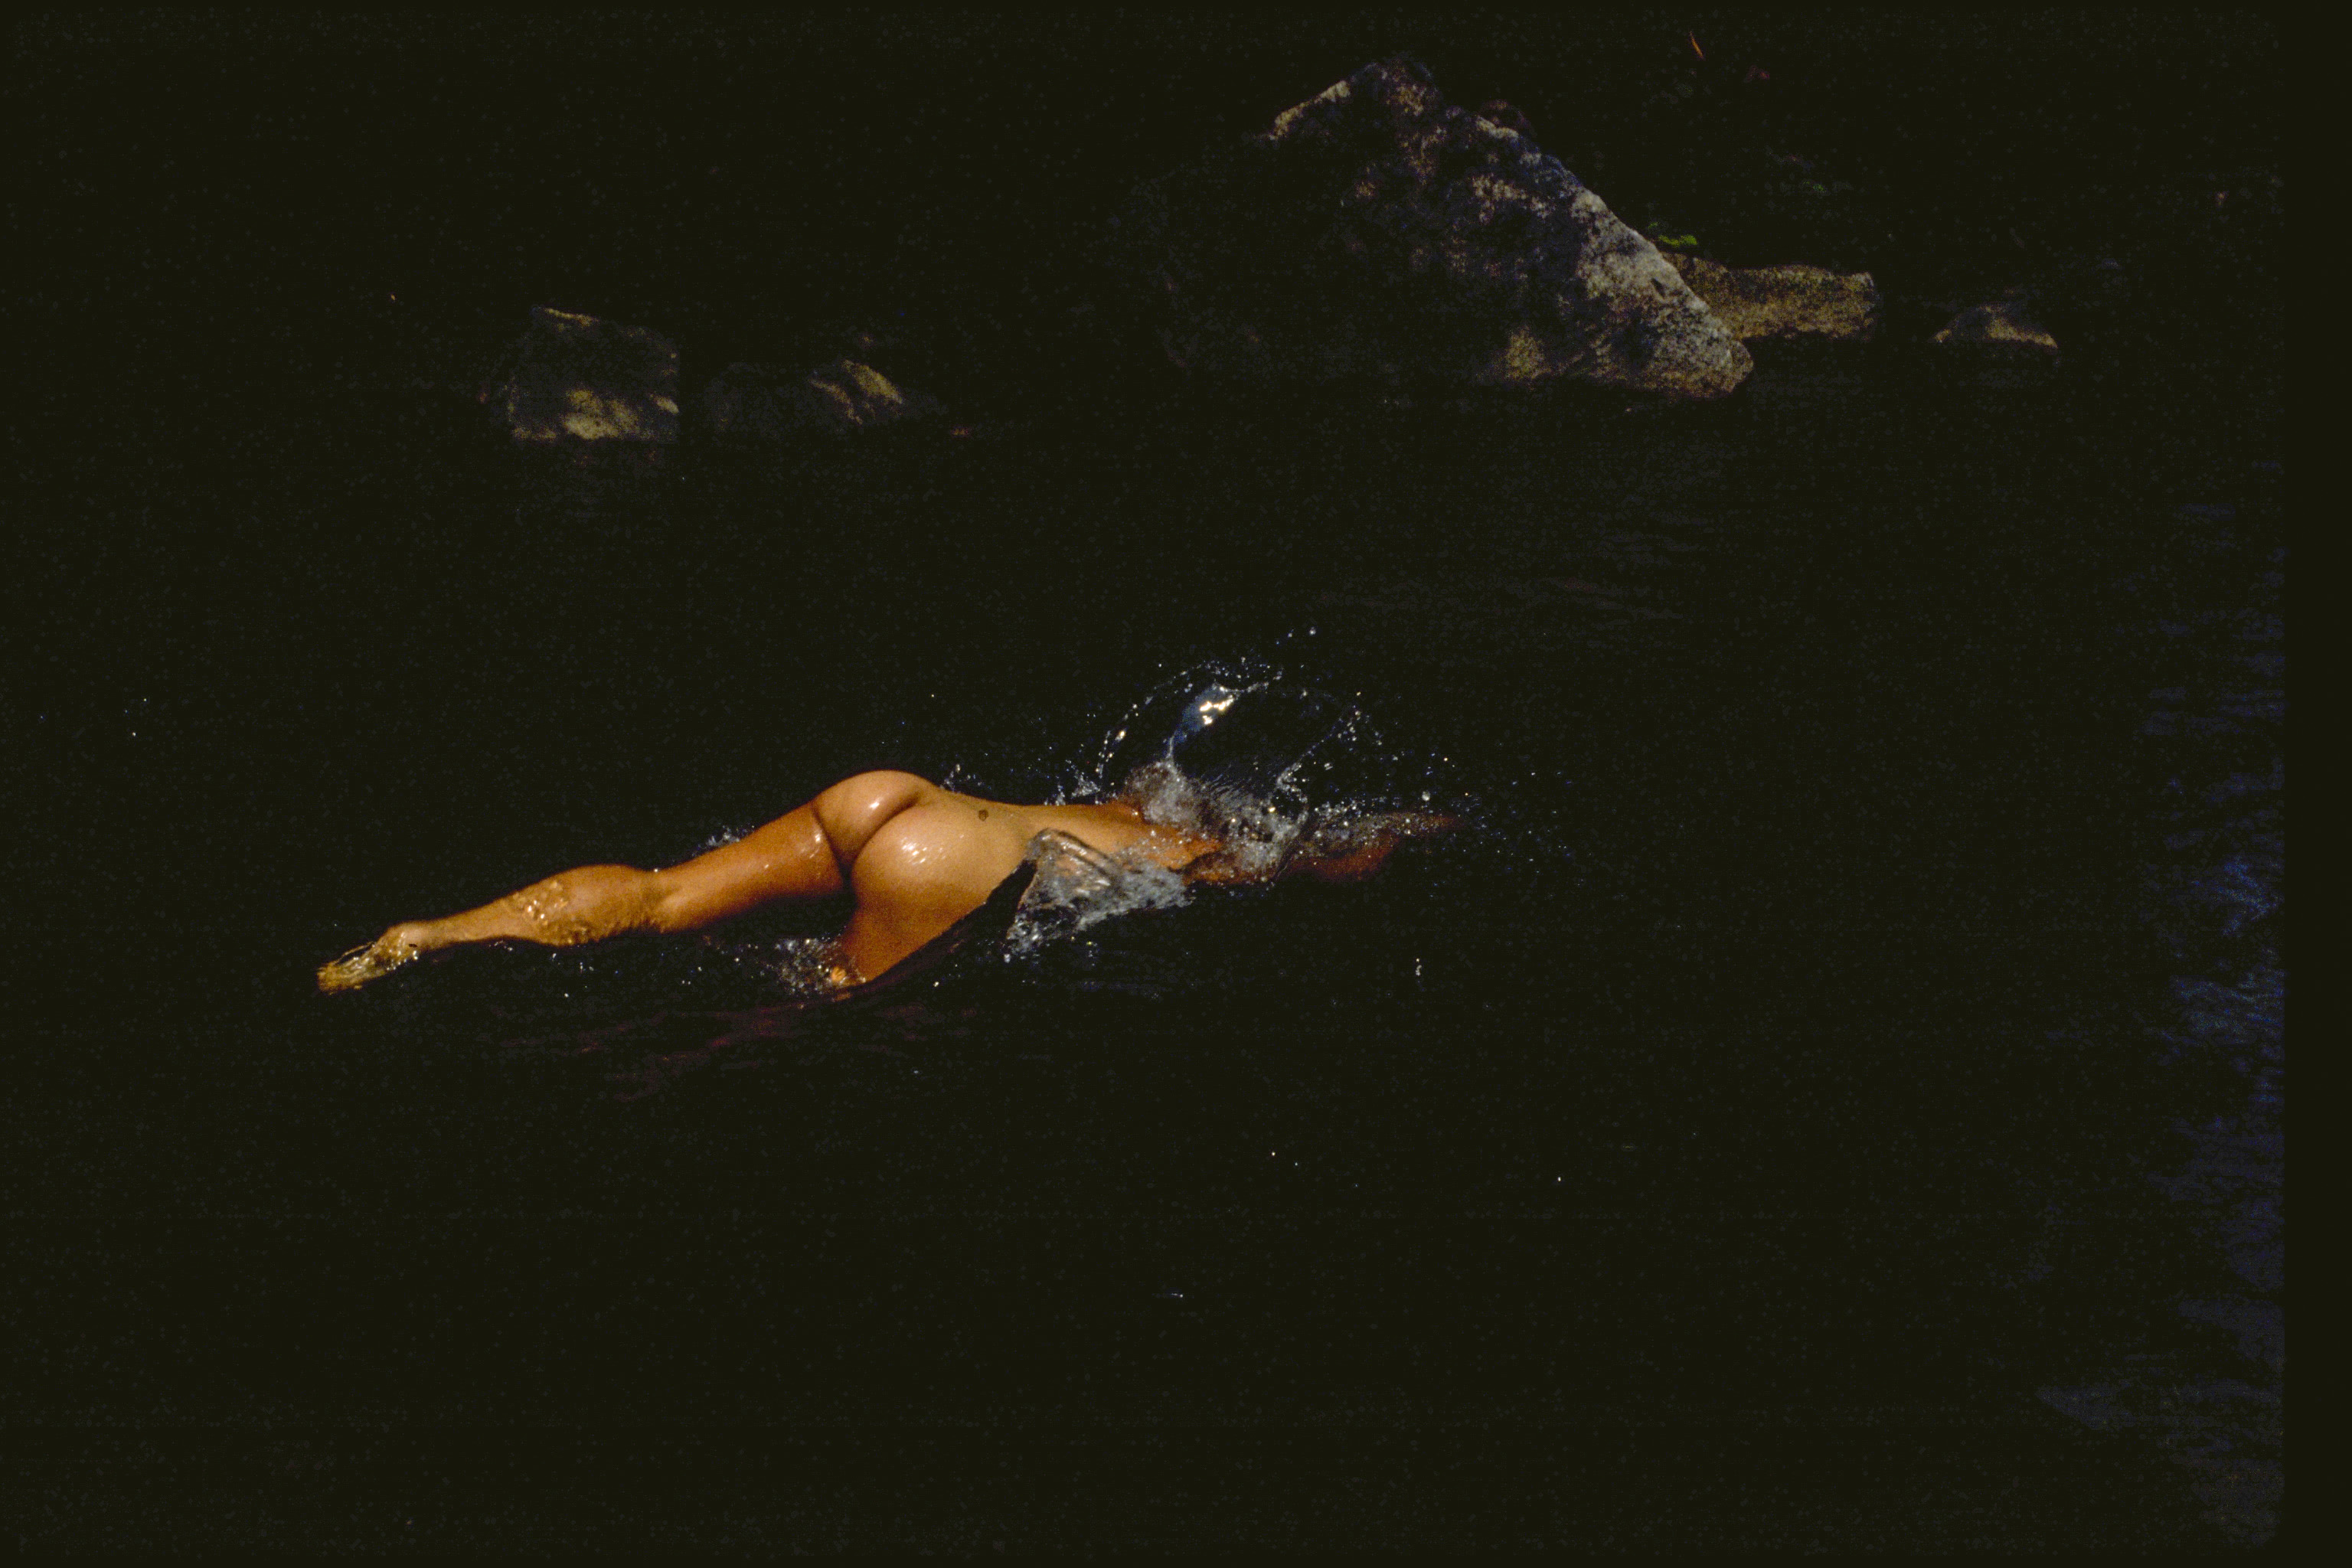 nude- diving in water